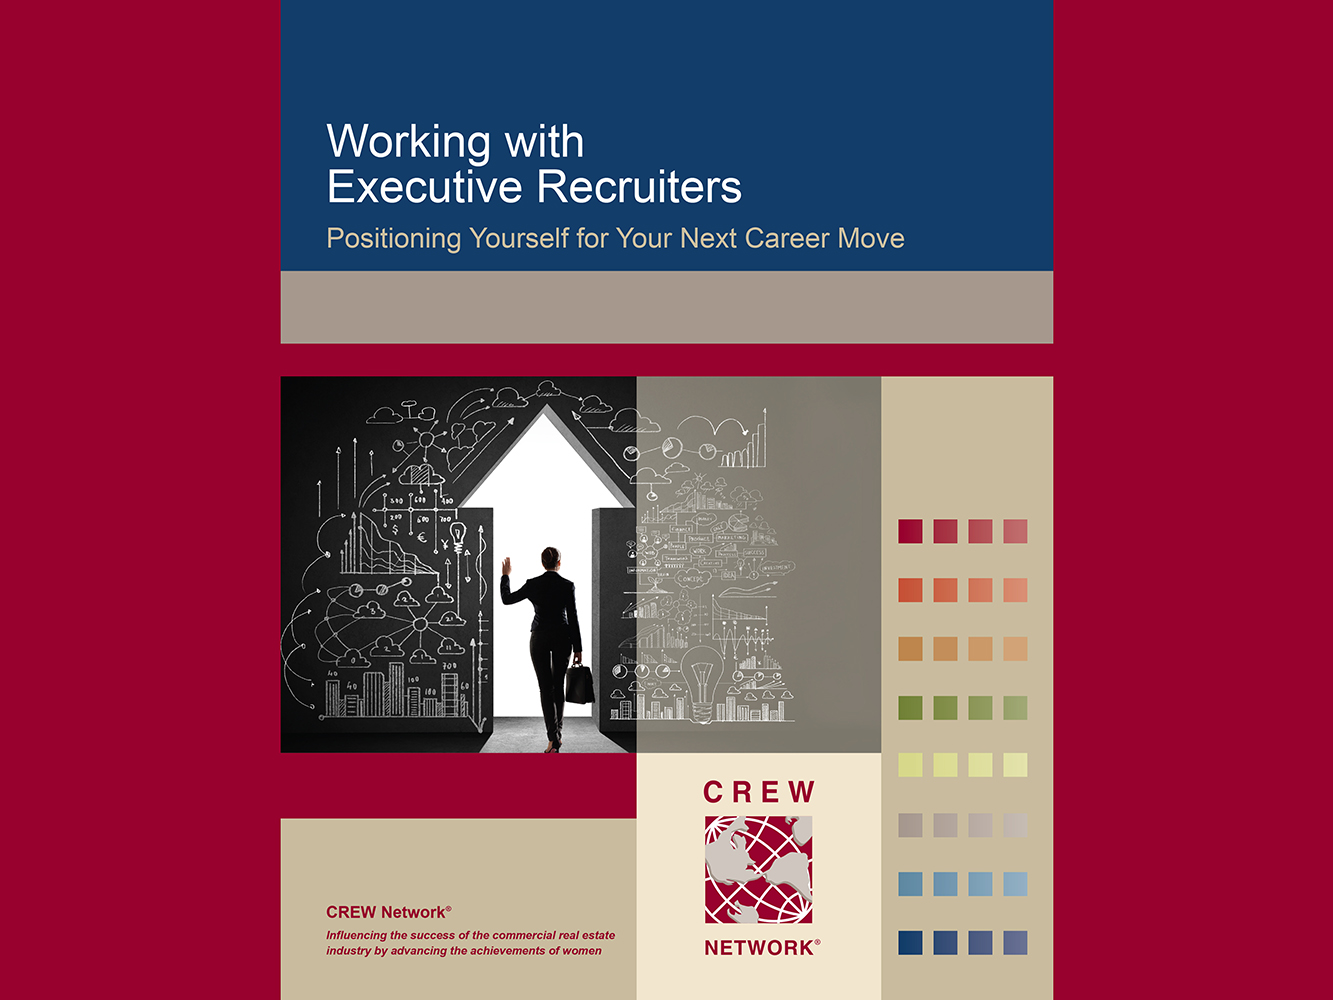 CREW Network White Paper Released - Working with Executive Recruiters